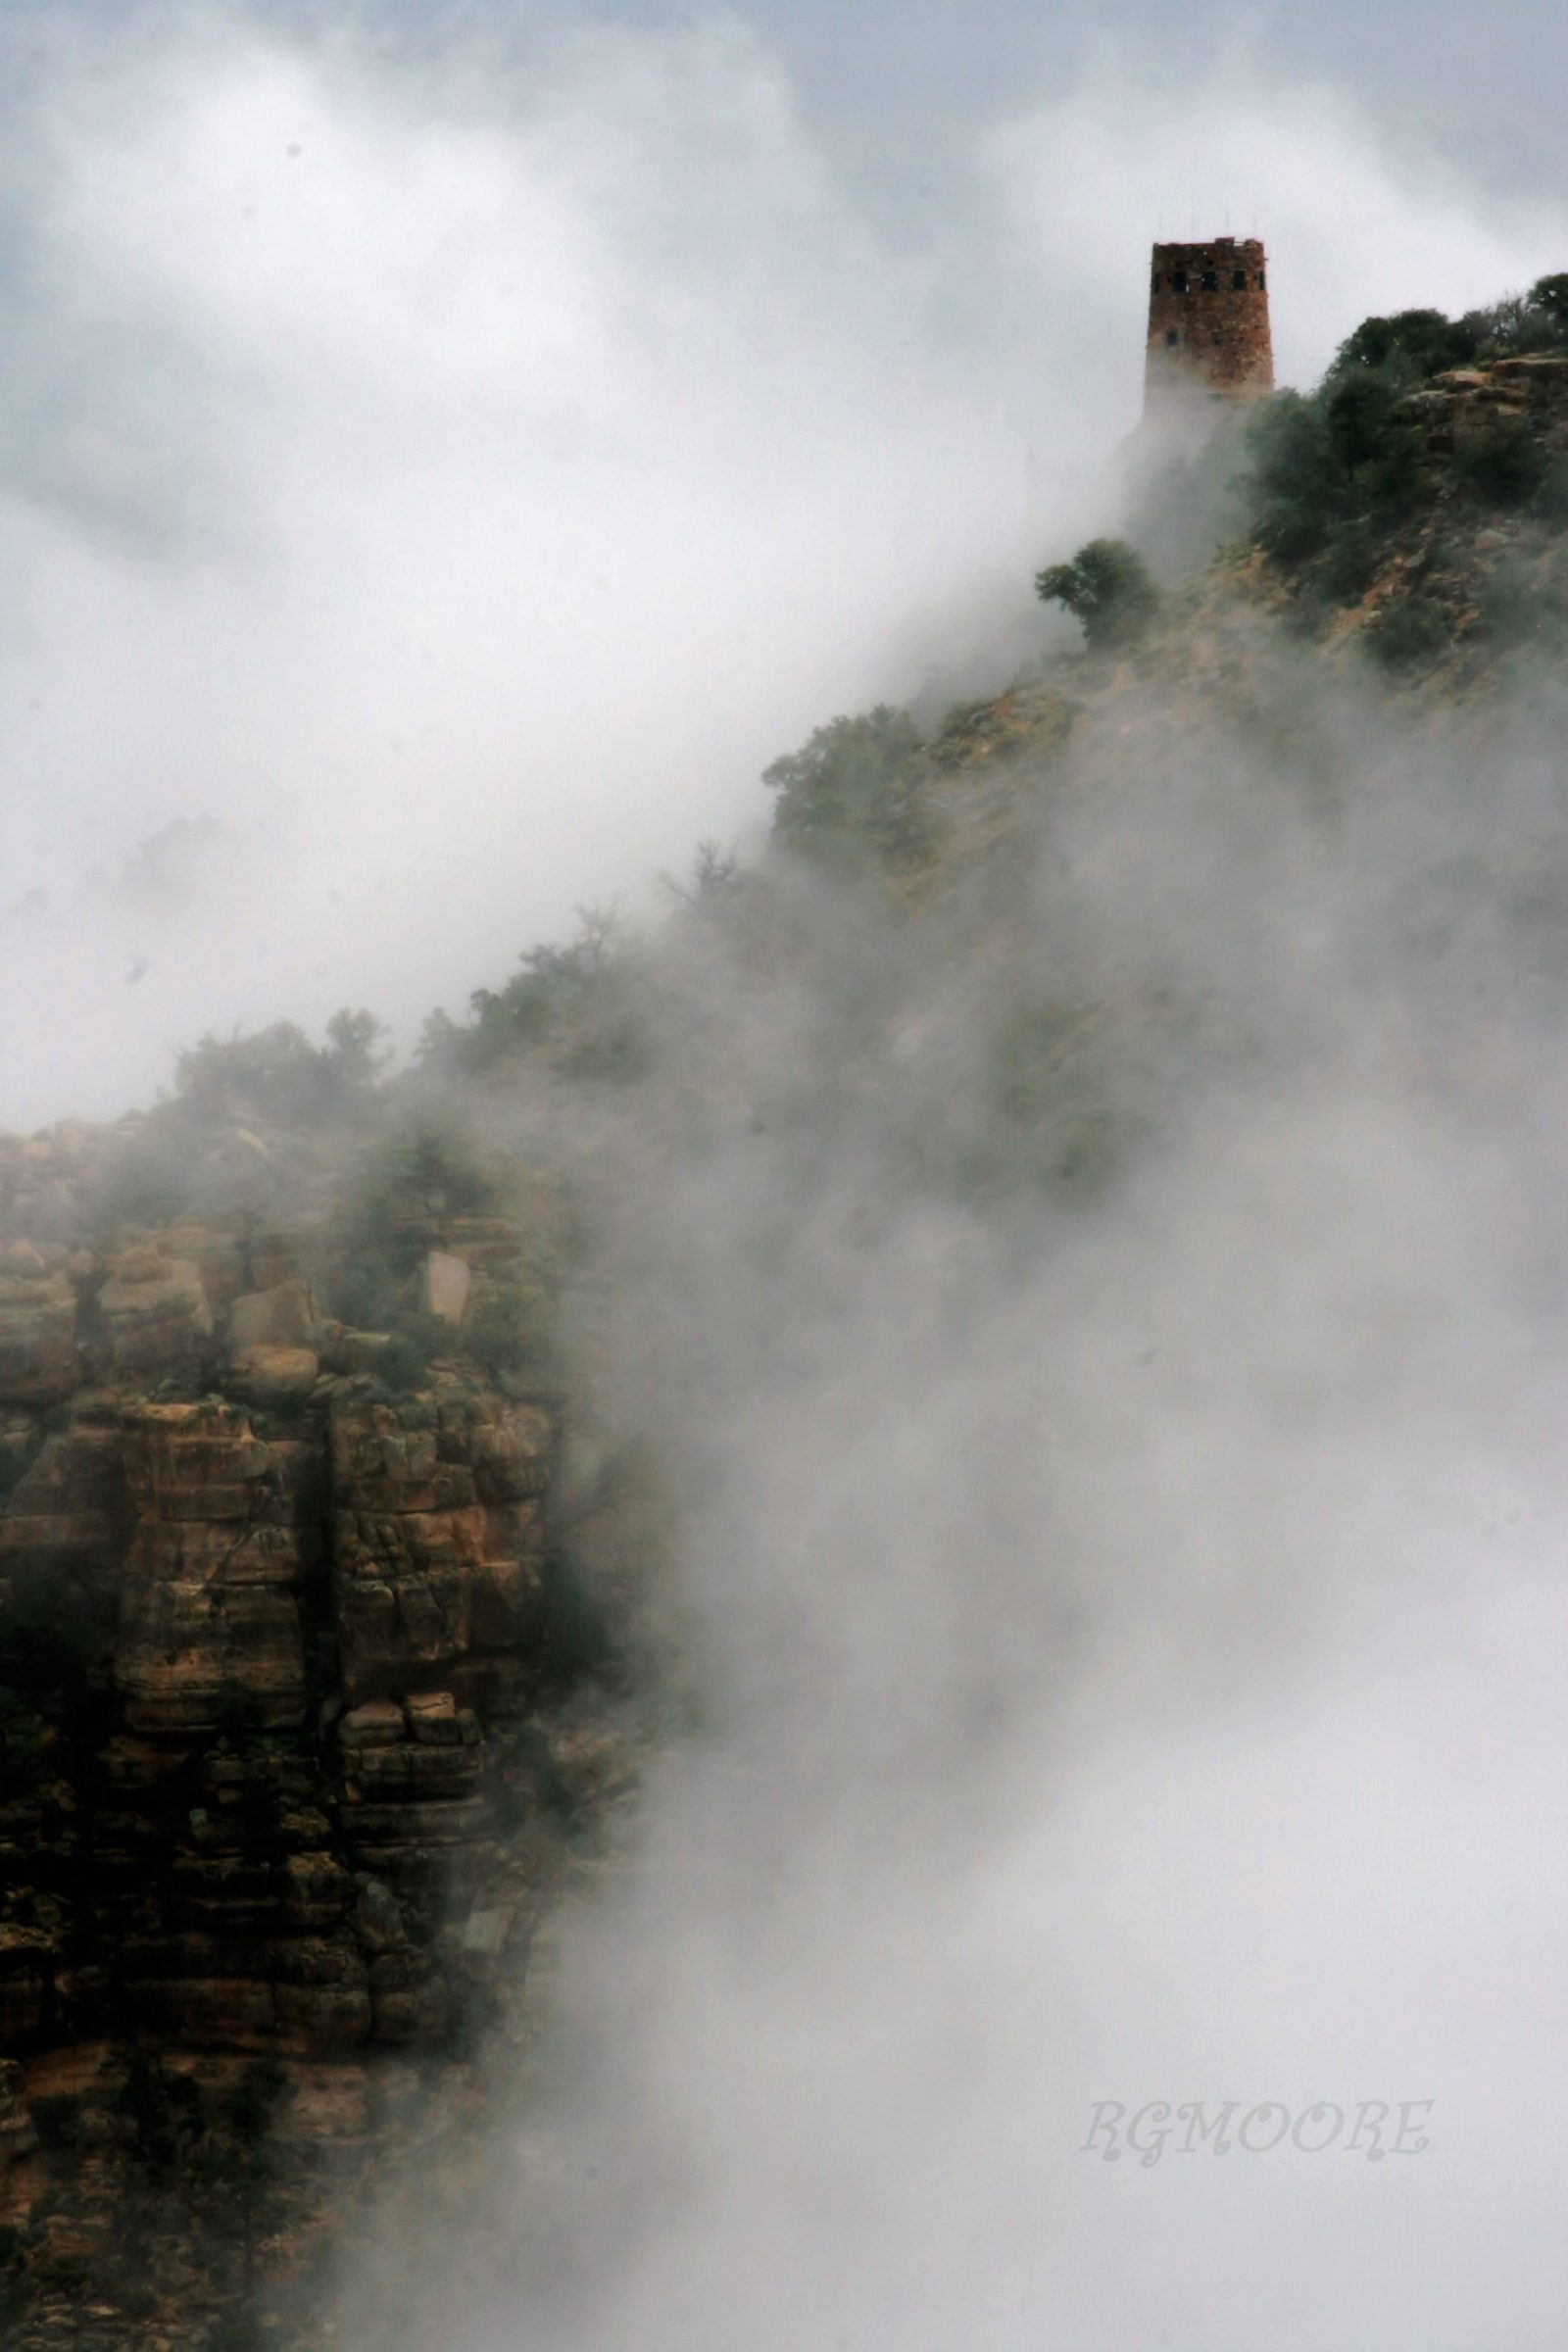 THE FOG OF THE GRAND CANYON